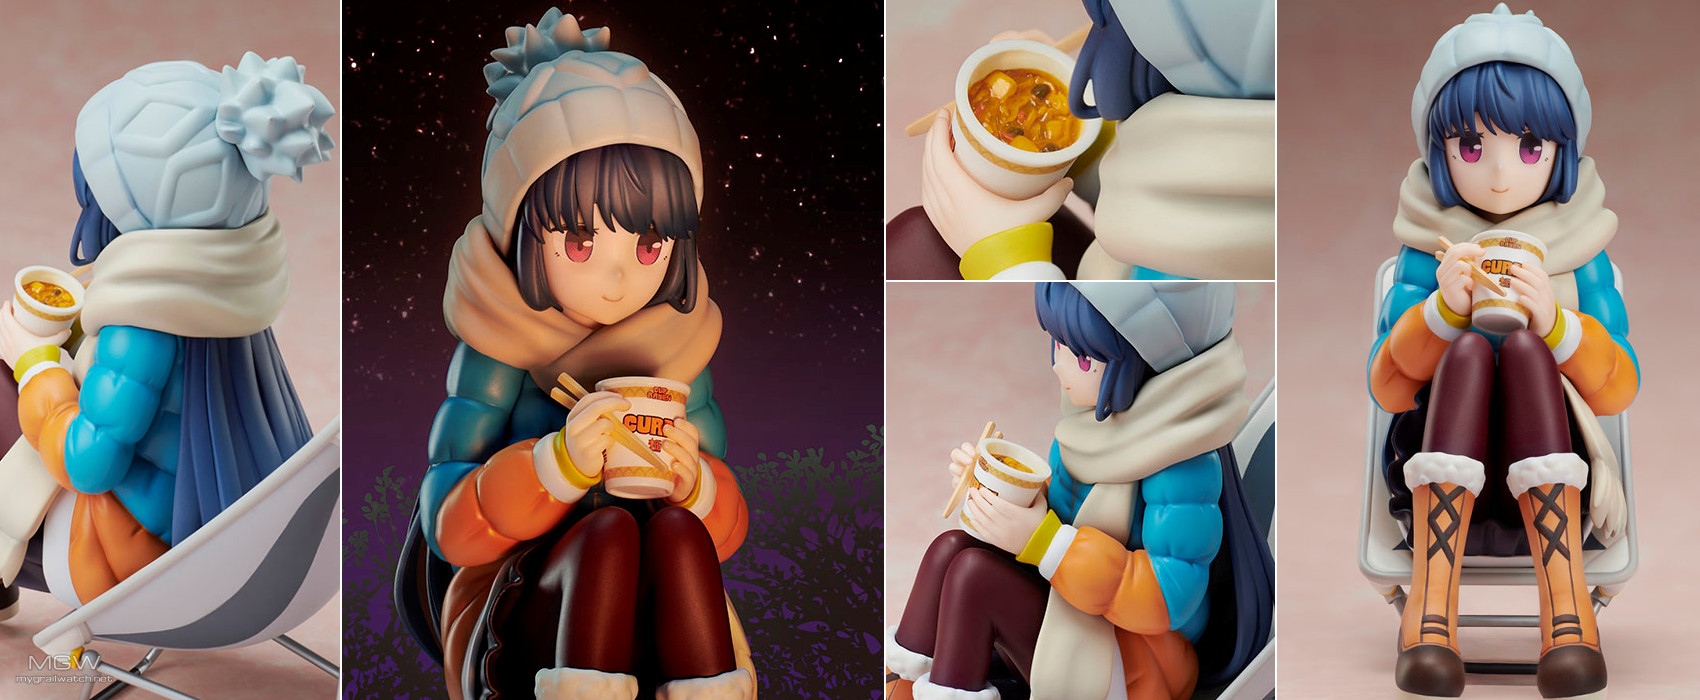 Shima Rin Premium Noodle Stopper by FuRyu from Yuru Camp